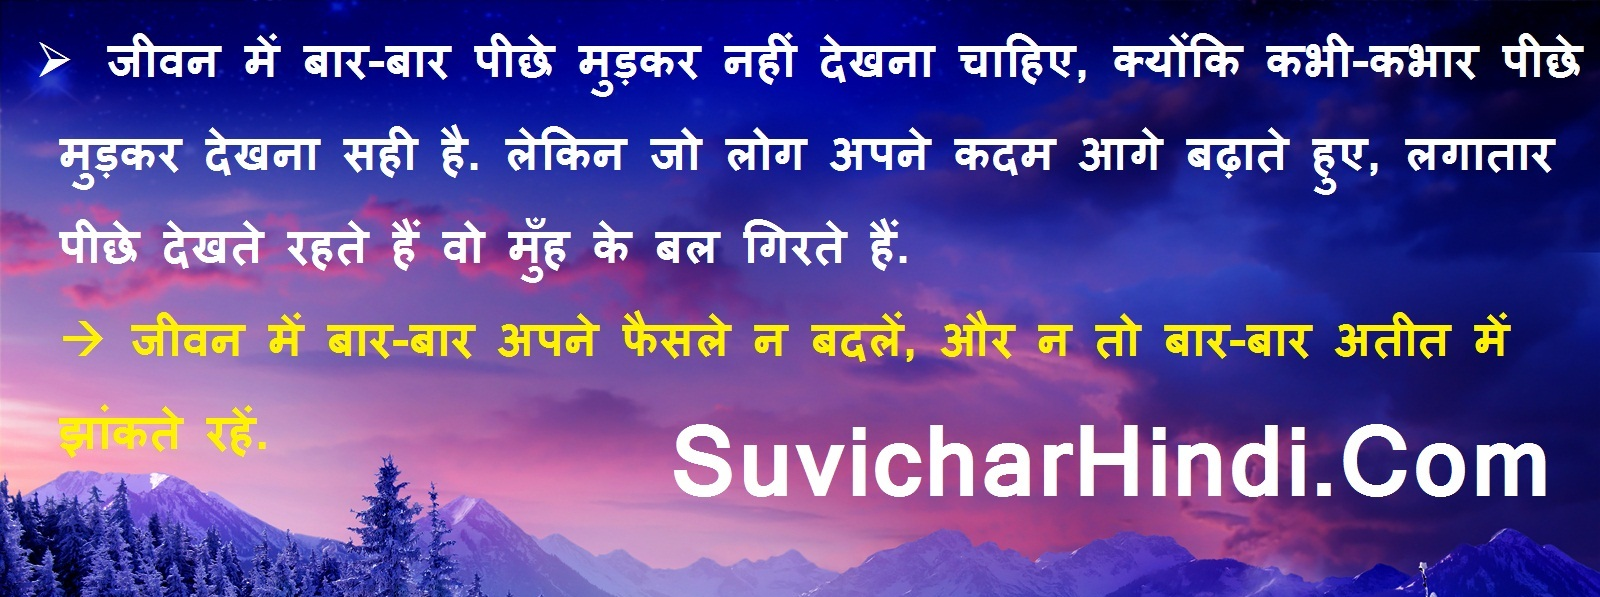 Some Good Quotes On Life Good Quotes In Hindi On Life  गुड कोट्स इन हिन्दी